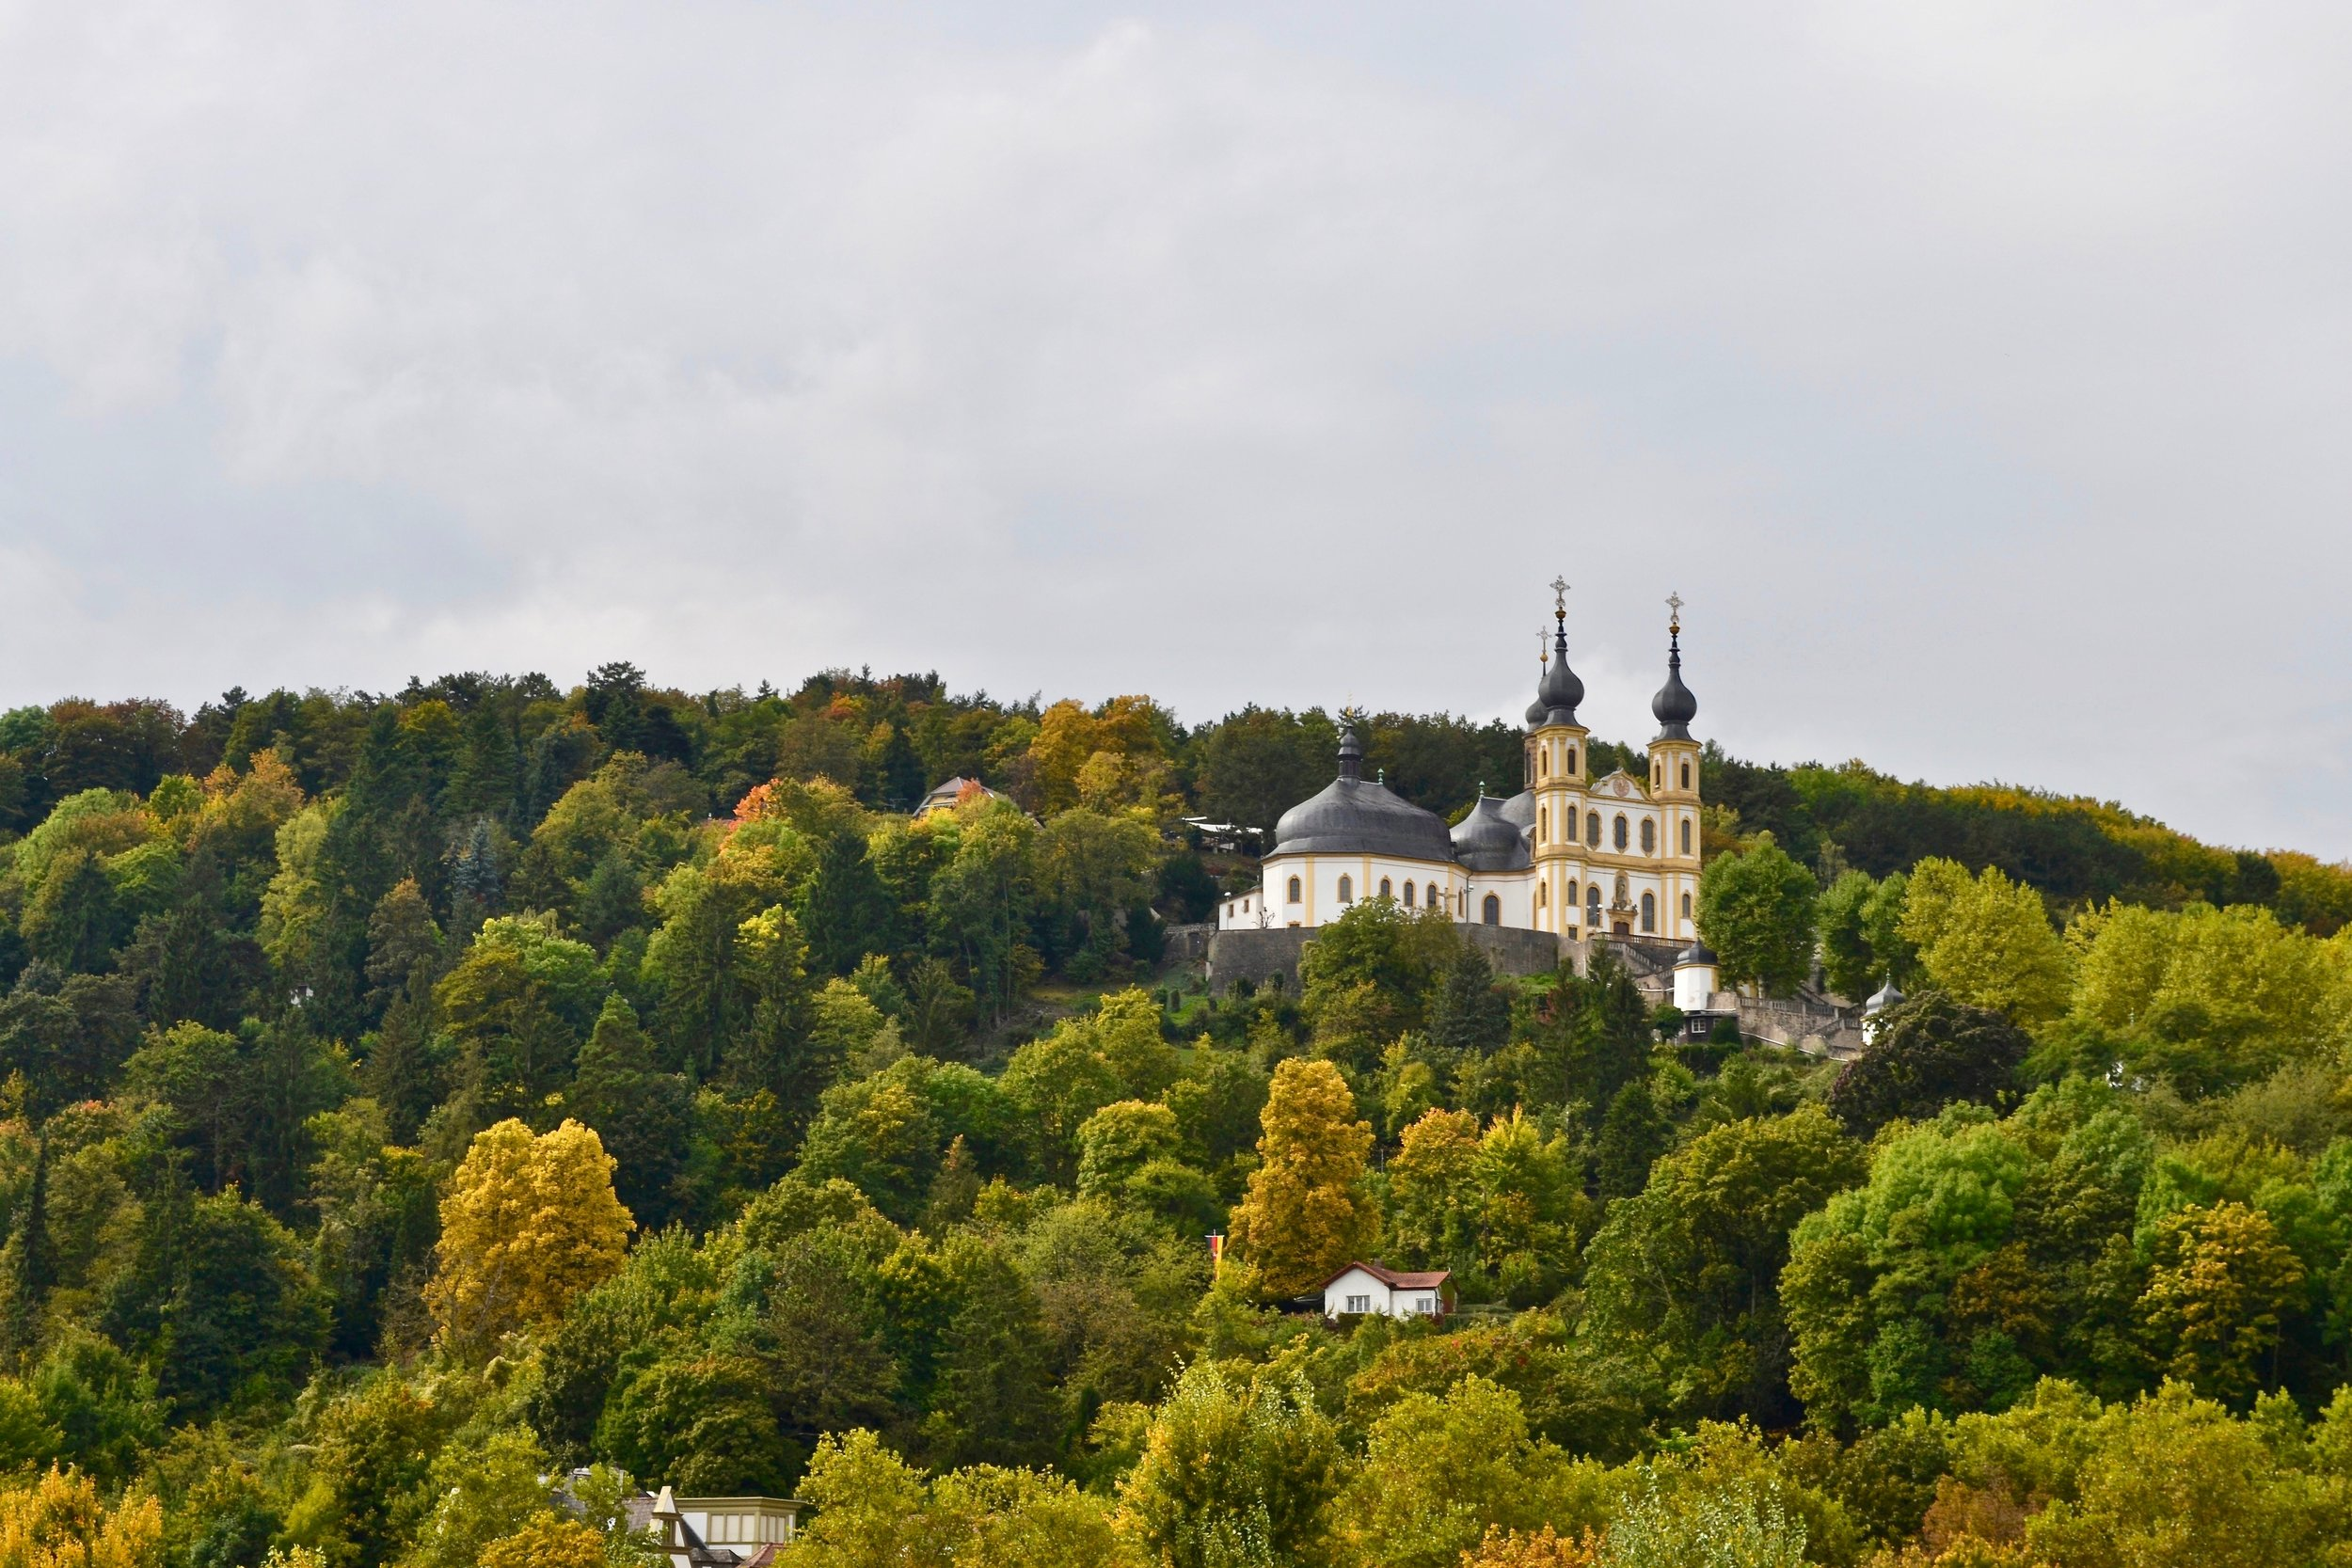 View of the Käppele in Würzburg